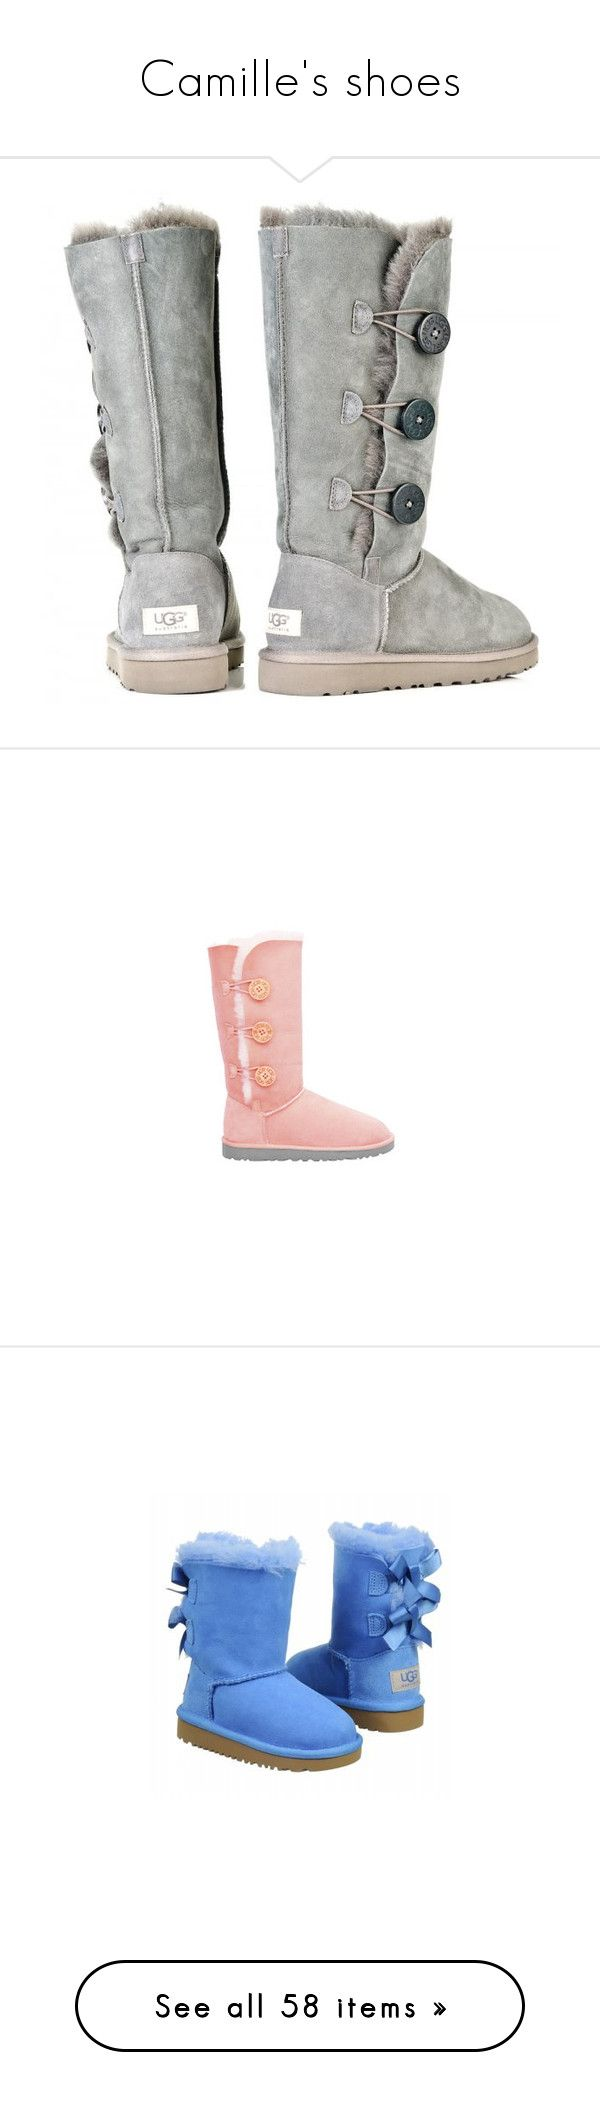 """""""Camille's shoes"""" by lisavo-1 ❤ liked on Polyvore featuring shoes, boots, kids, babies, timberlands, ugg, gray flat shoes, ugg australia boots, wide boots and grey flat shoes"""